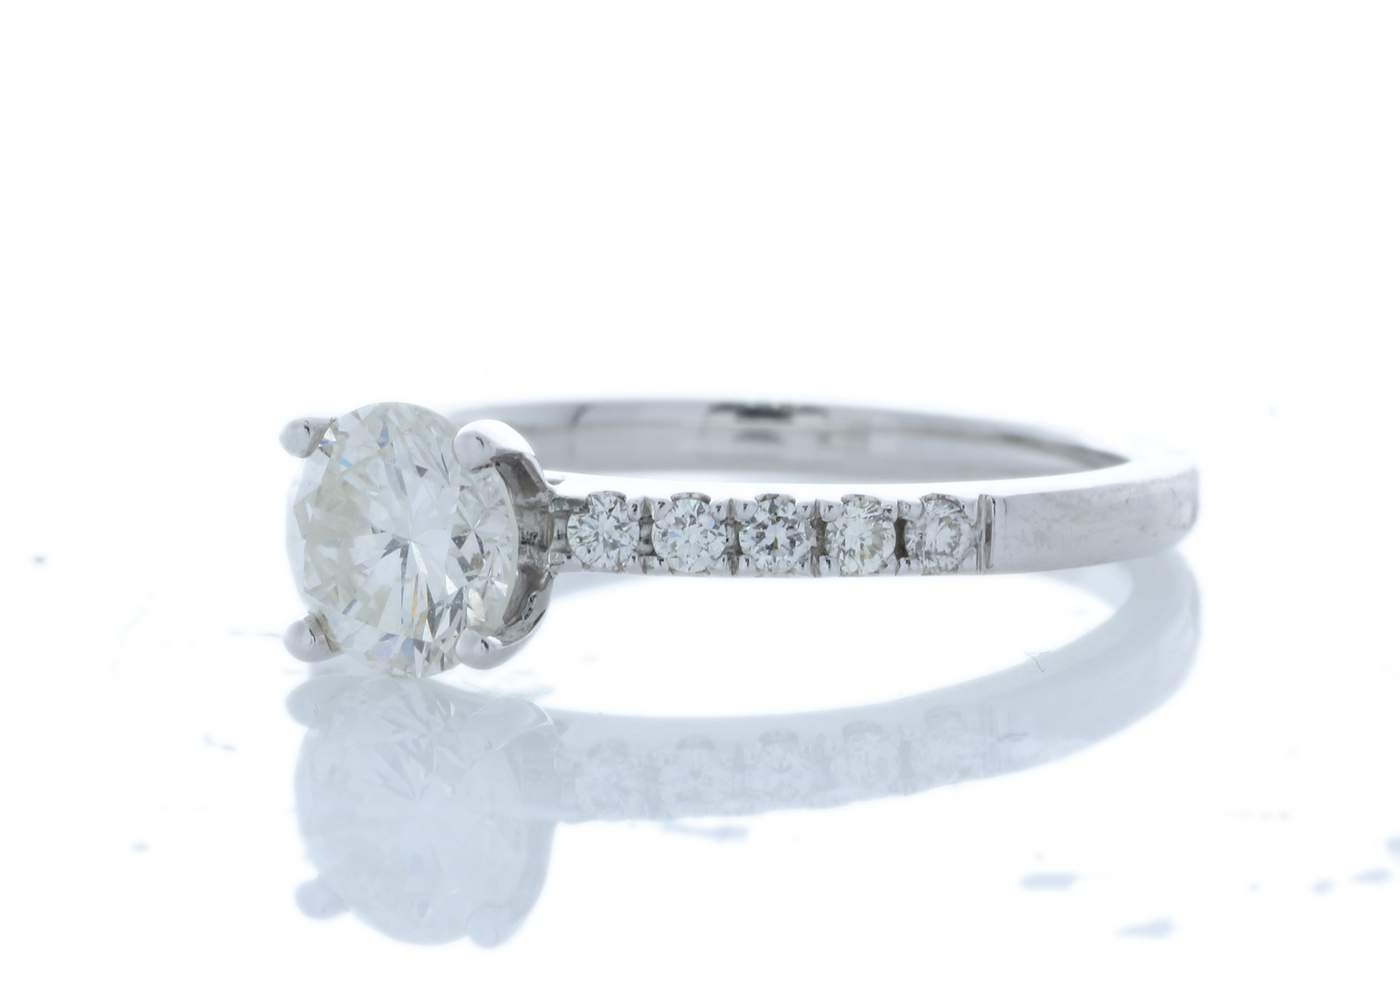 18ct White Gold Stone Set Shoulders Diamond Ring 0.90 Carats - Image 3 of 5